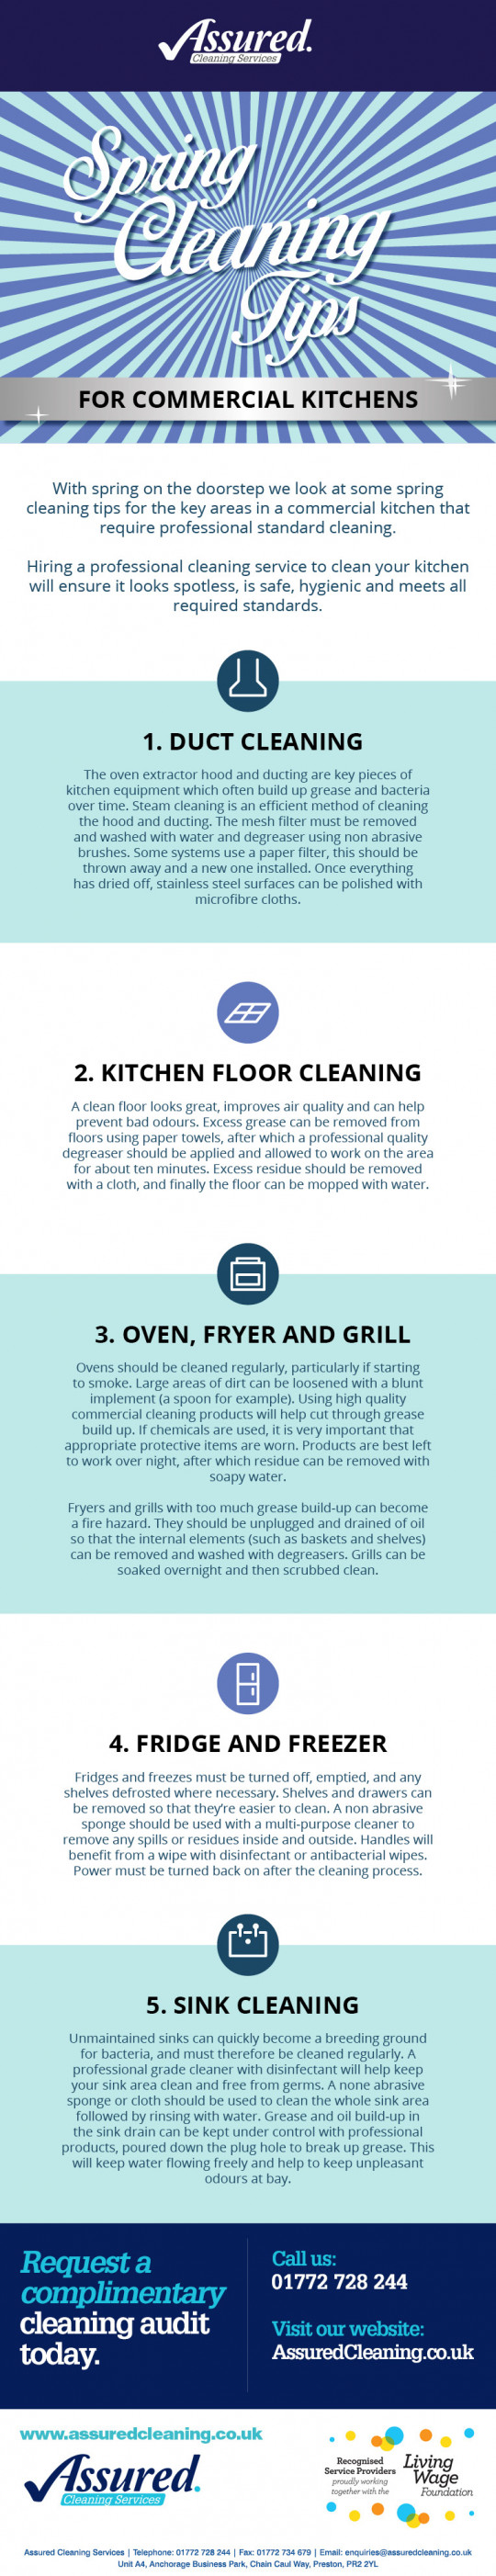 Spring Cleaning Tips for Commercial Kitchens